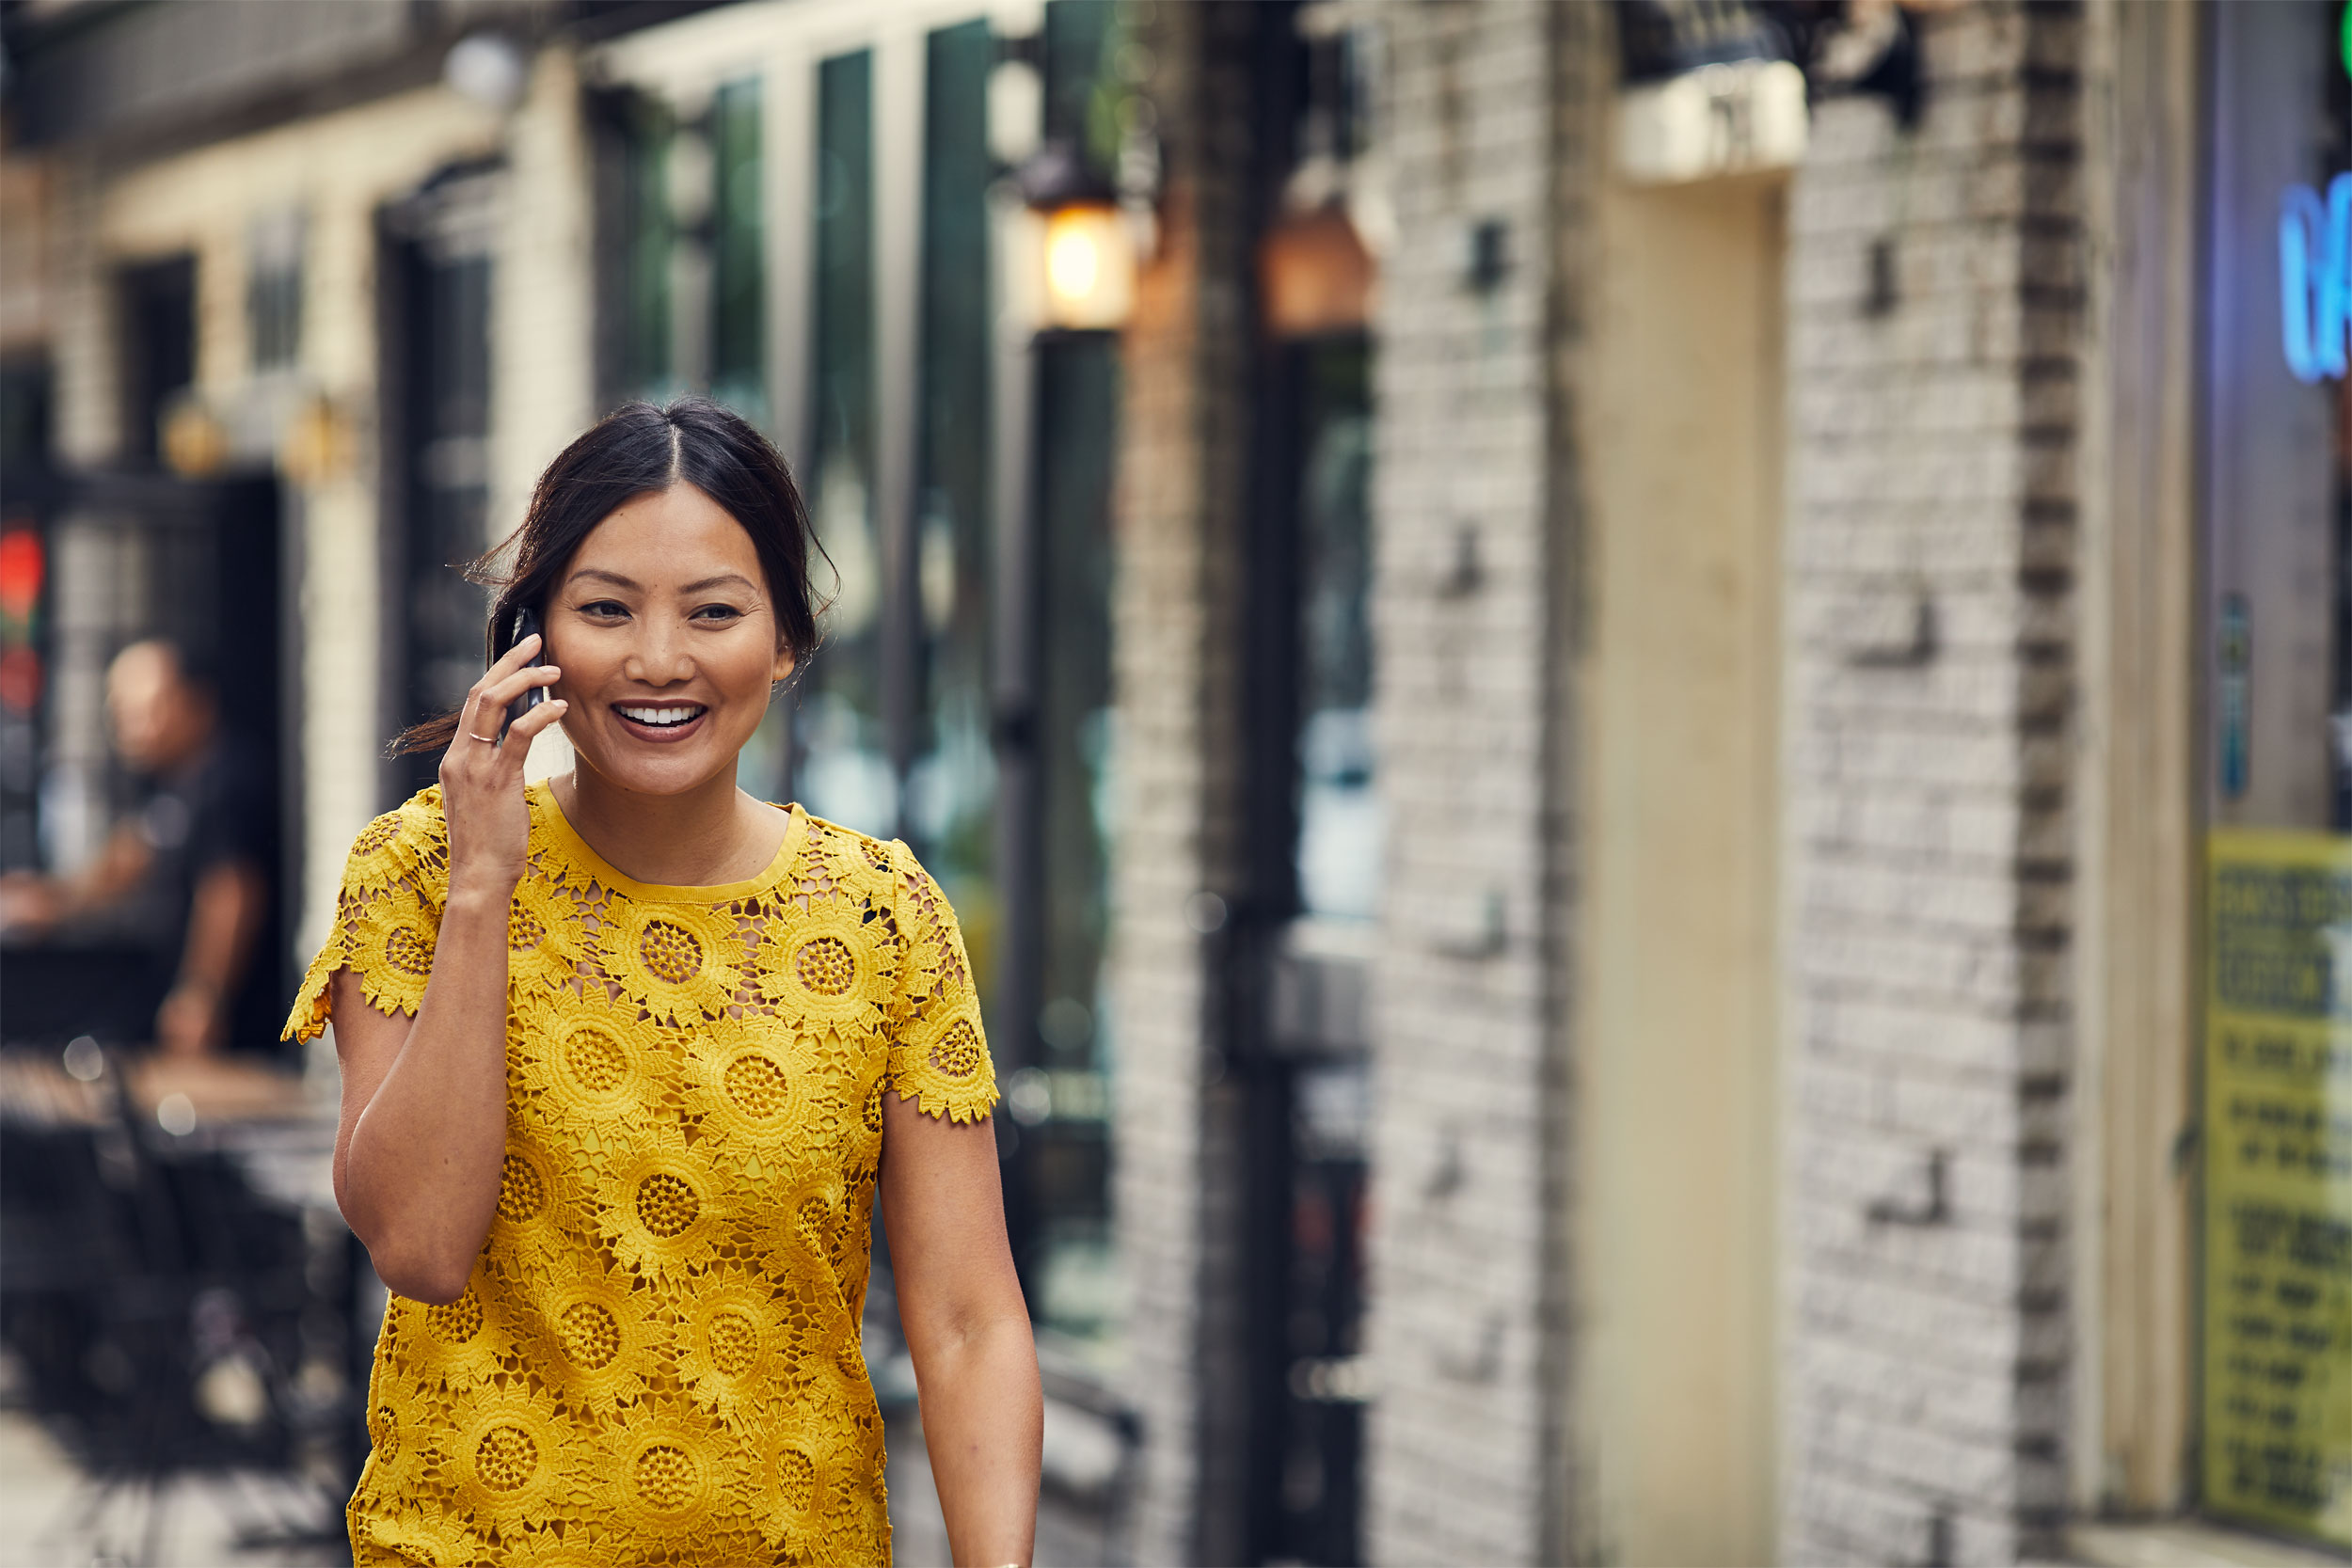 woman in yellow dress talking on smartphone on street, washington dc commercial photography